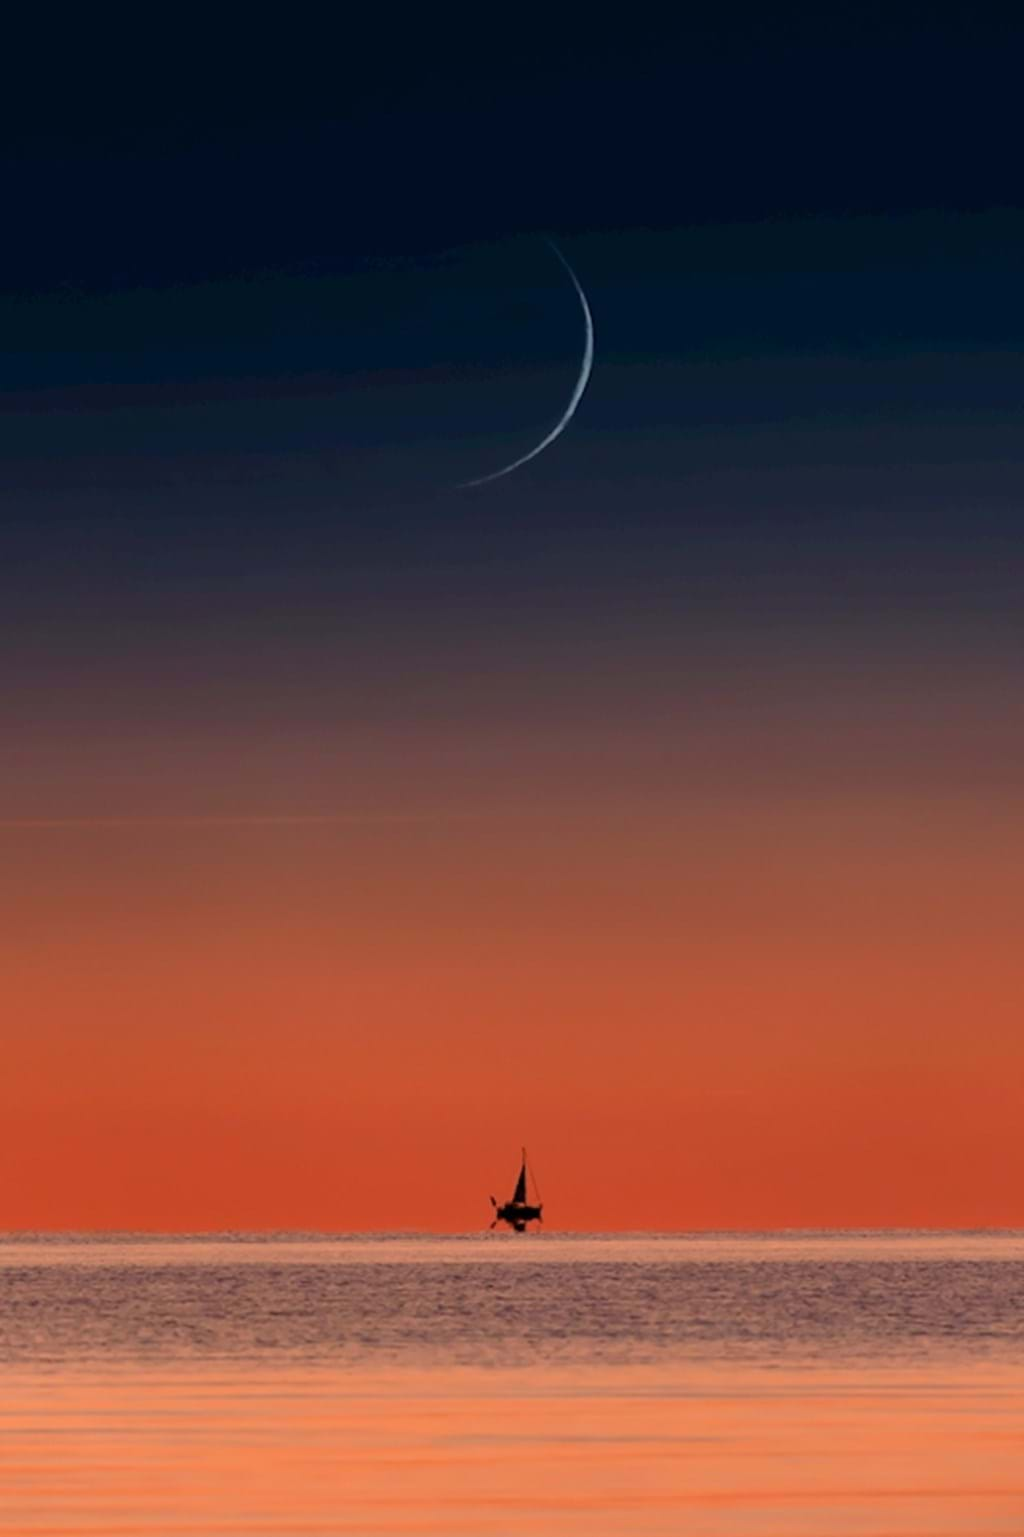 Poster: Sail me to the moon - Digital